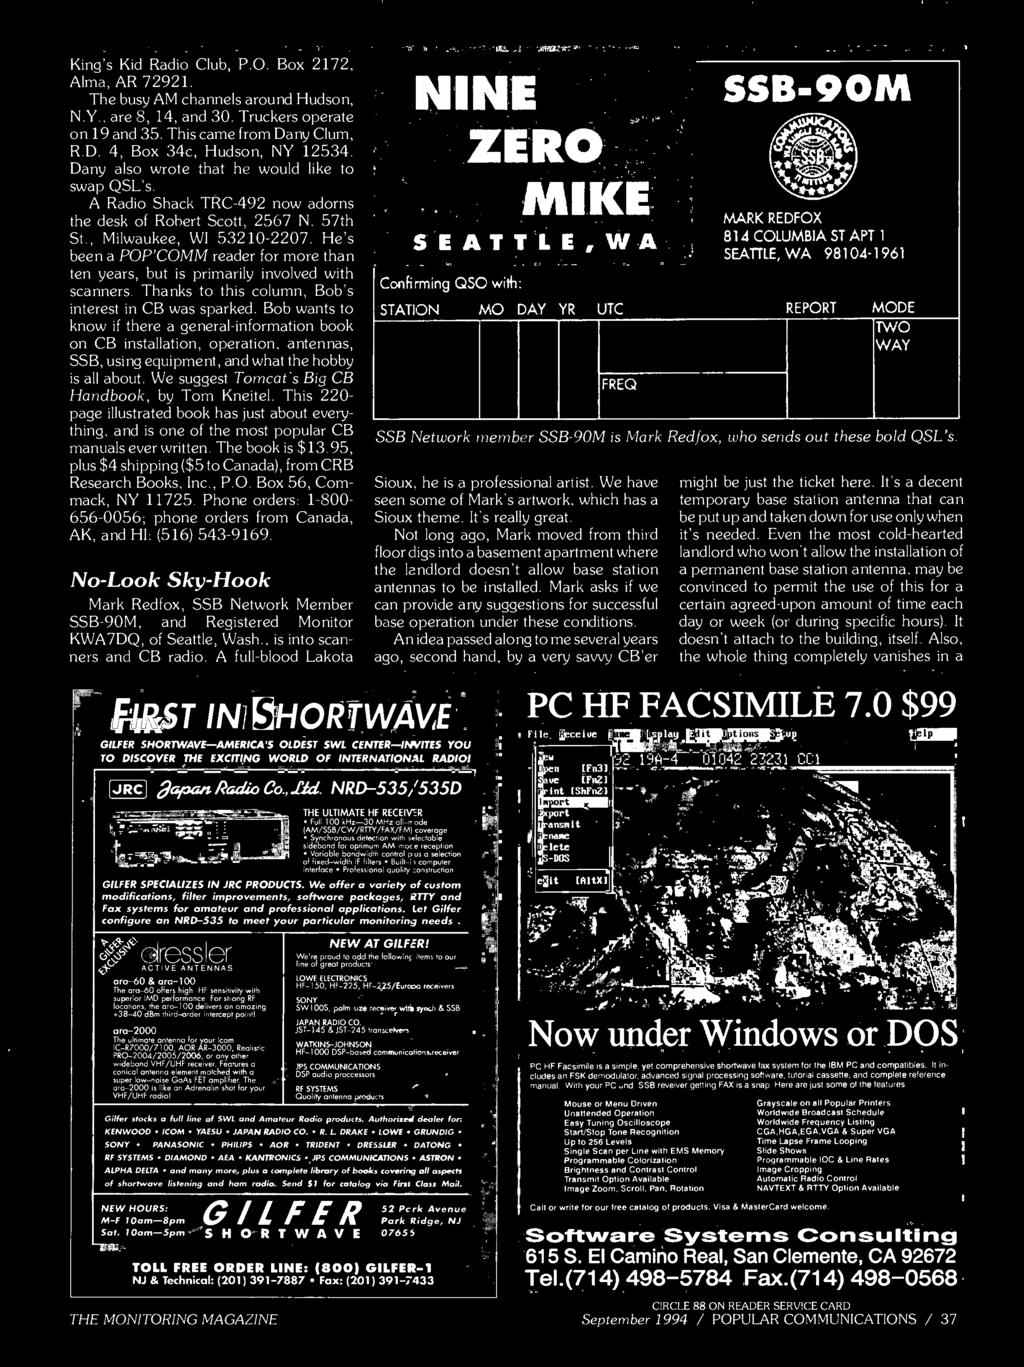 September 1994 Communications Also In This 222 Dug U52 Us Free Ongkir Philips Dry Iron Hd 1173 40 We Suggest Tomcats Big Cb Handbook By Tom Kneitel 220 Page Illustrated